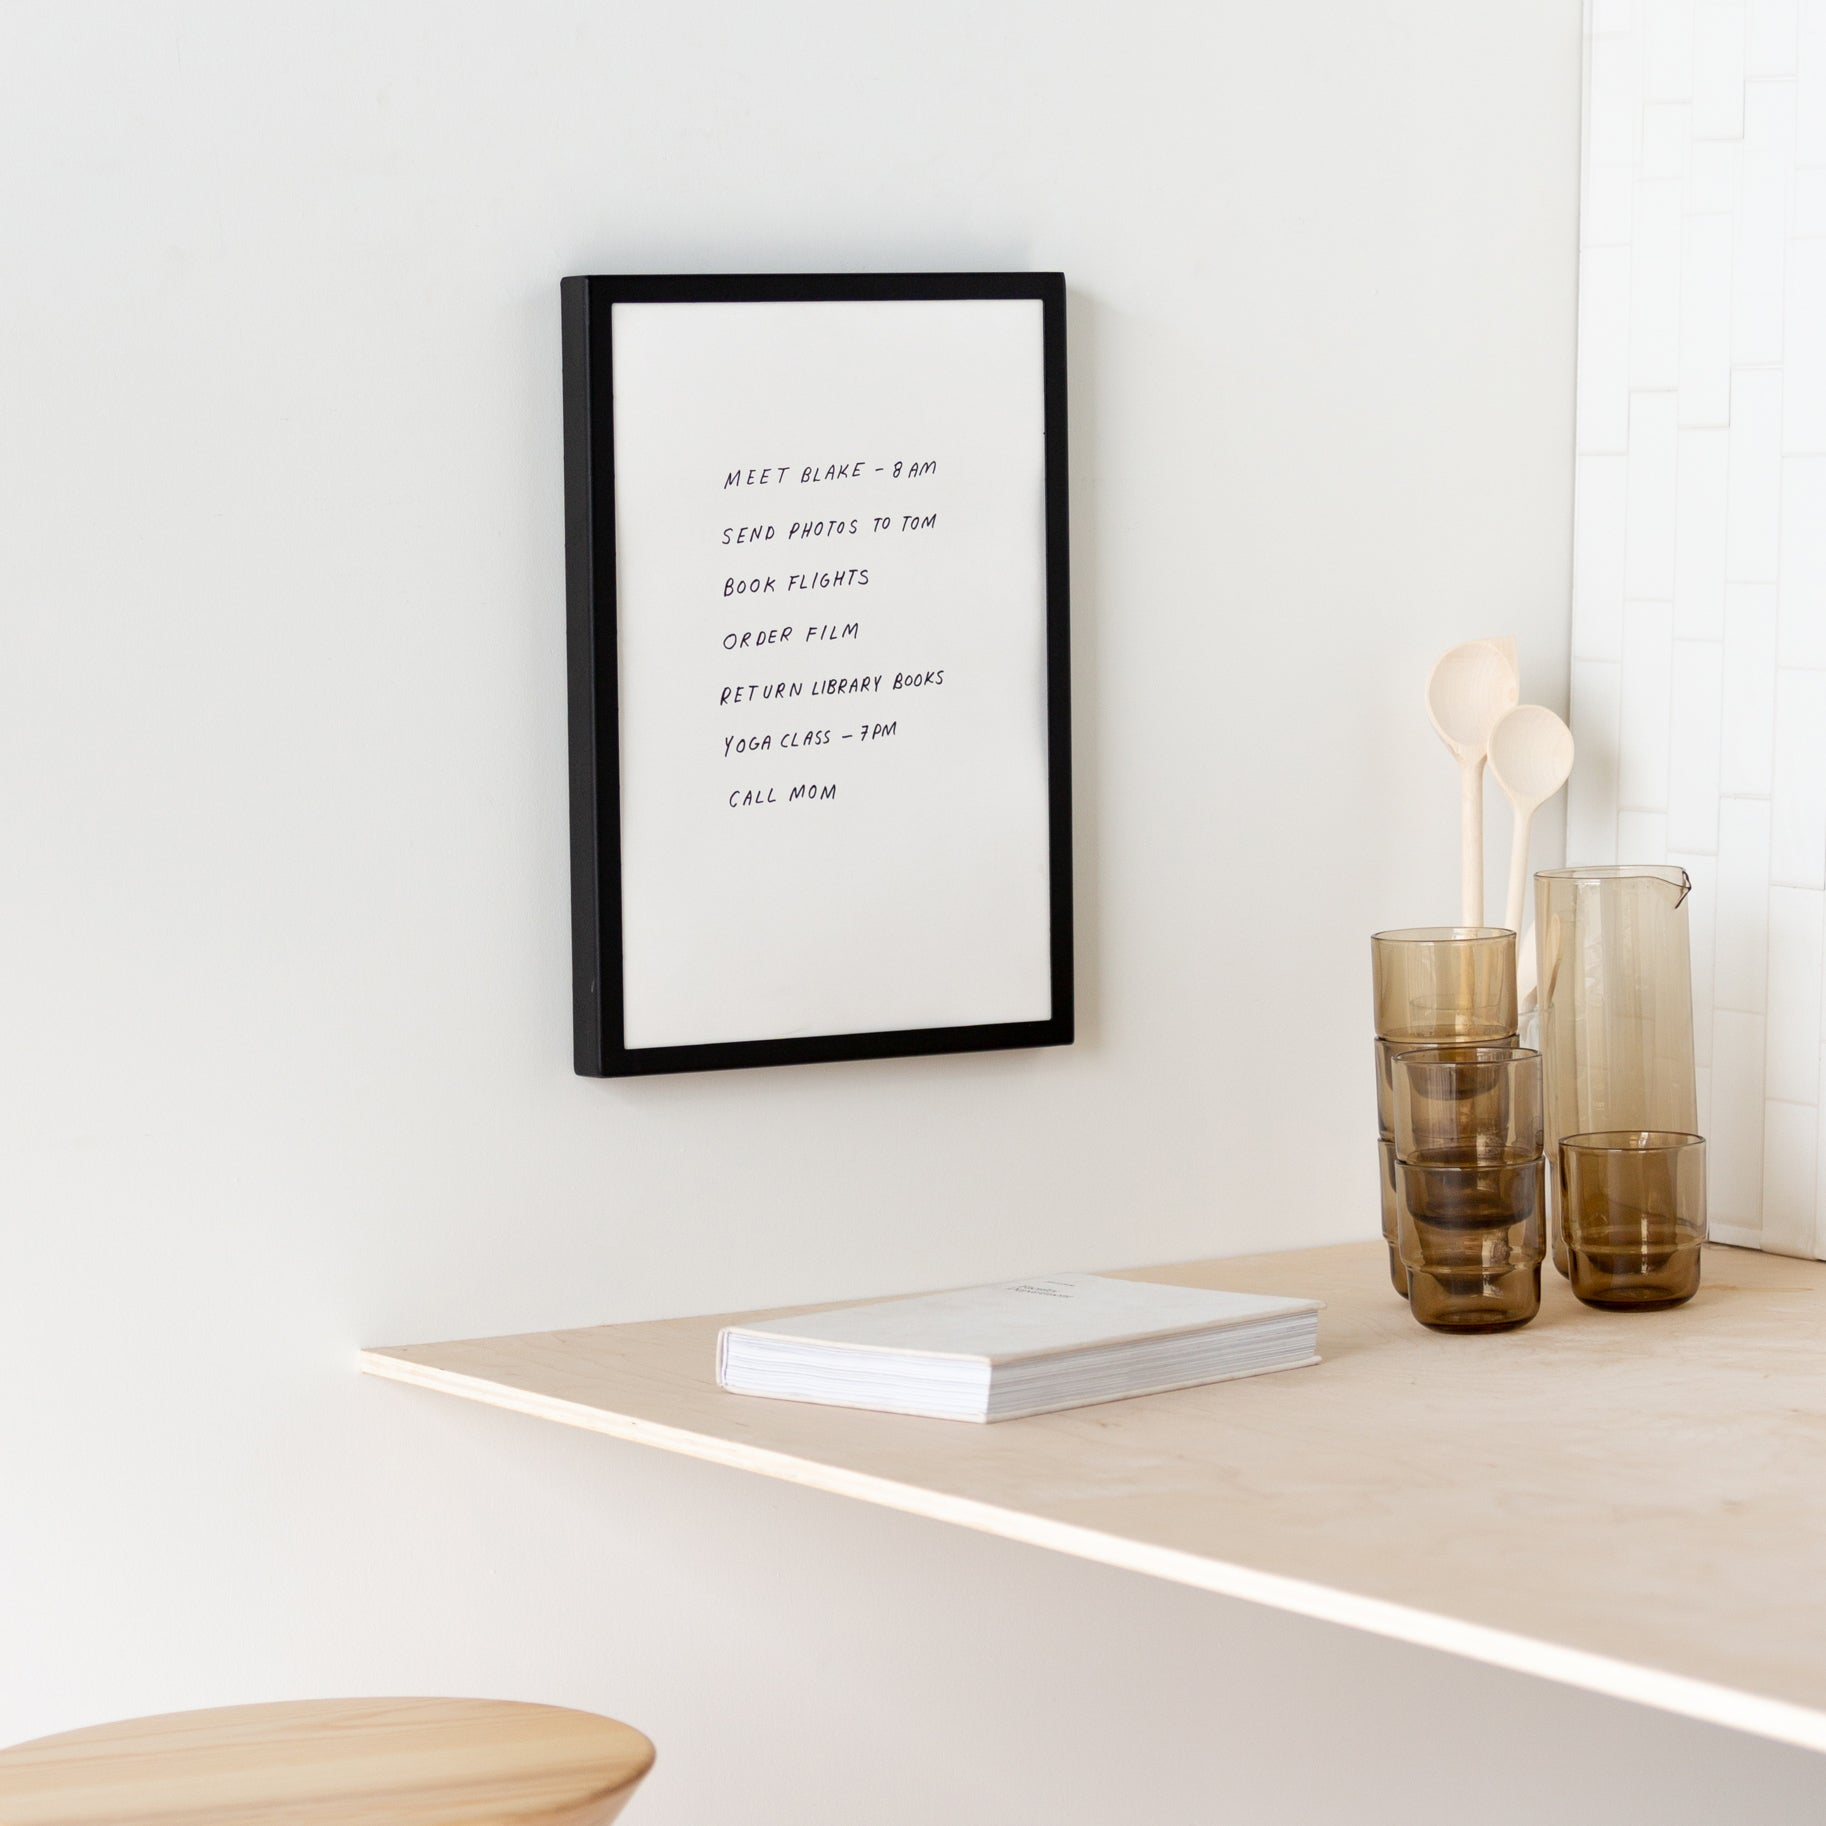 wall-mounted paper frame